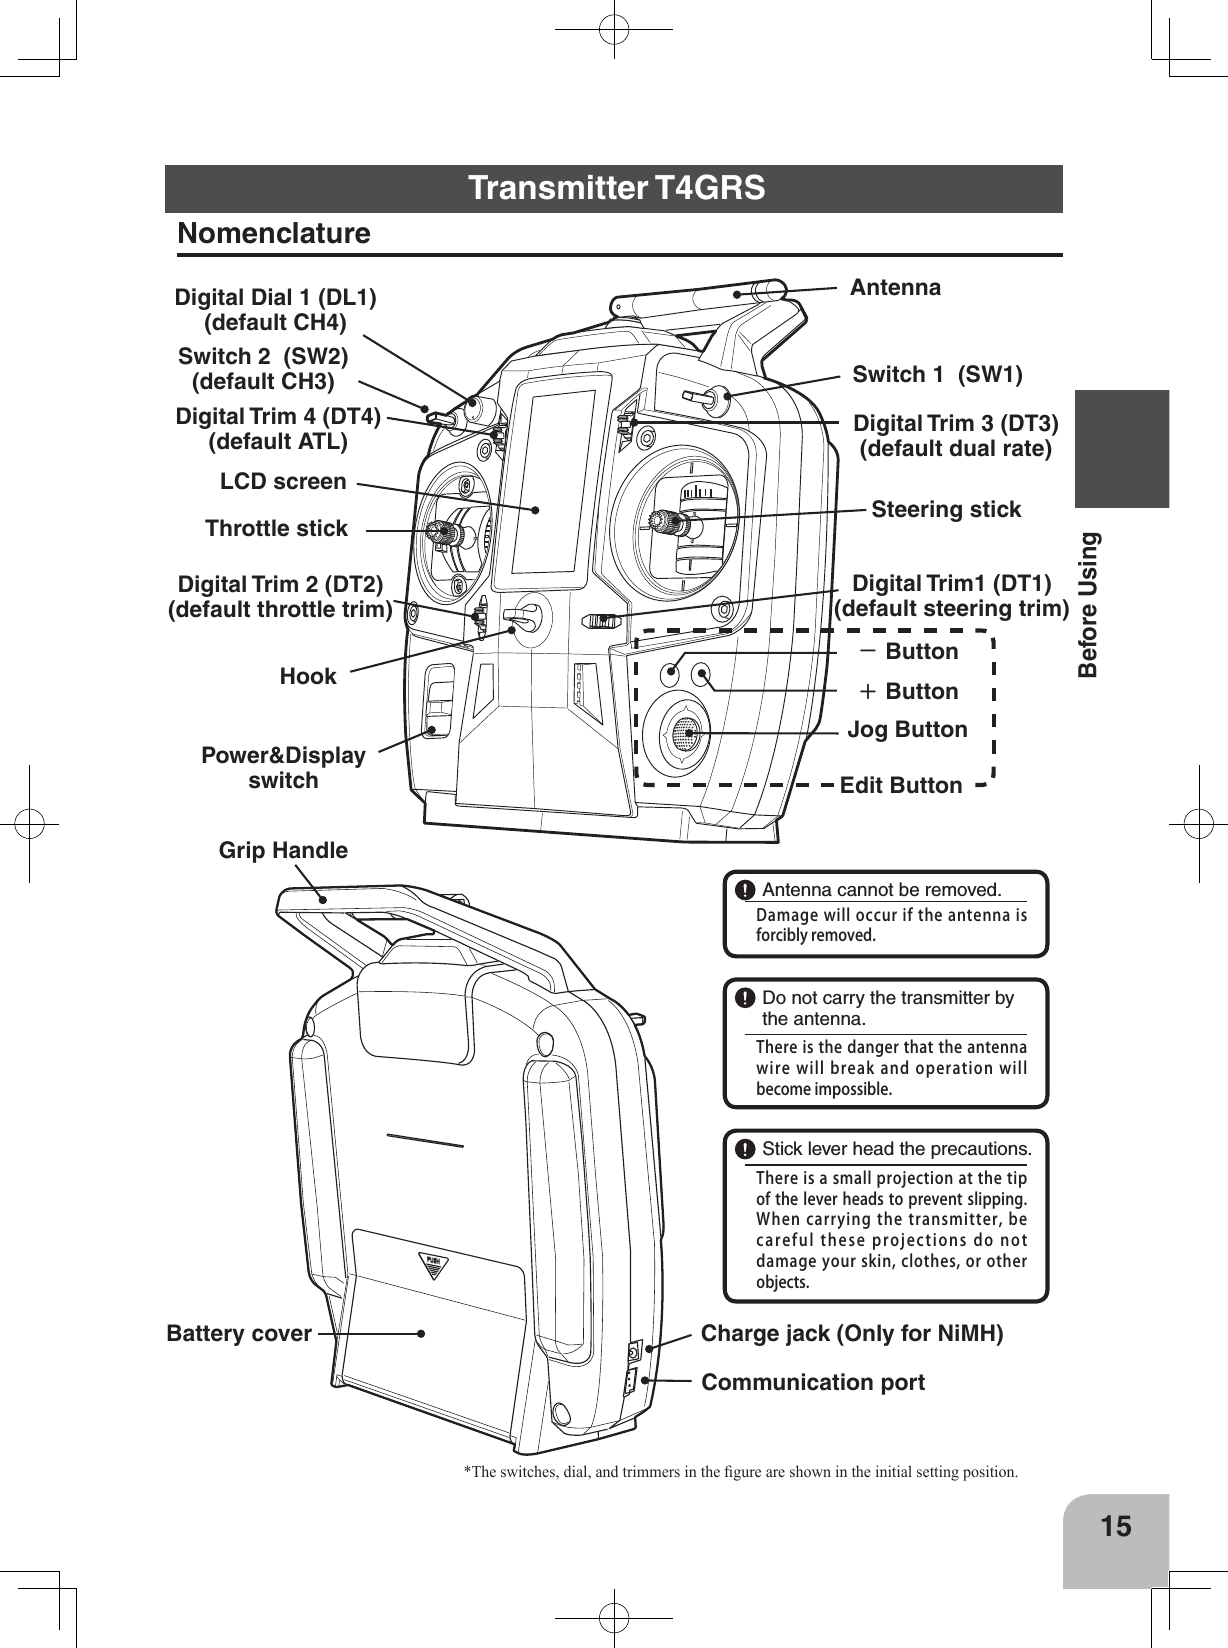 Futaba T4GRS-24G Radio Control User Manual Part 1